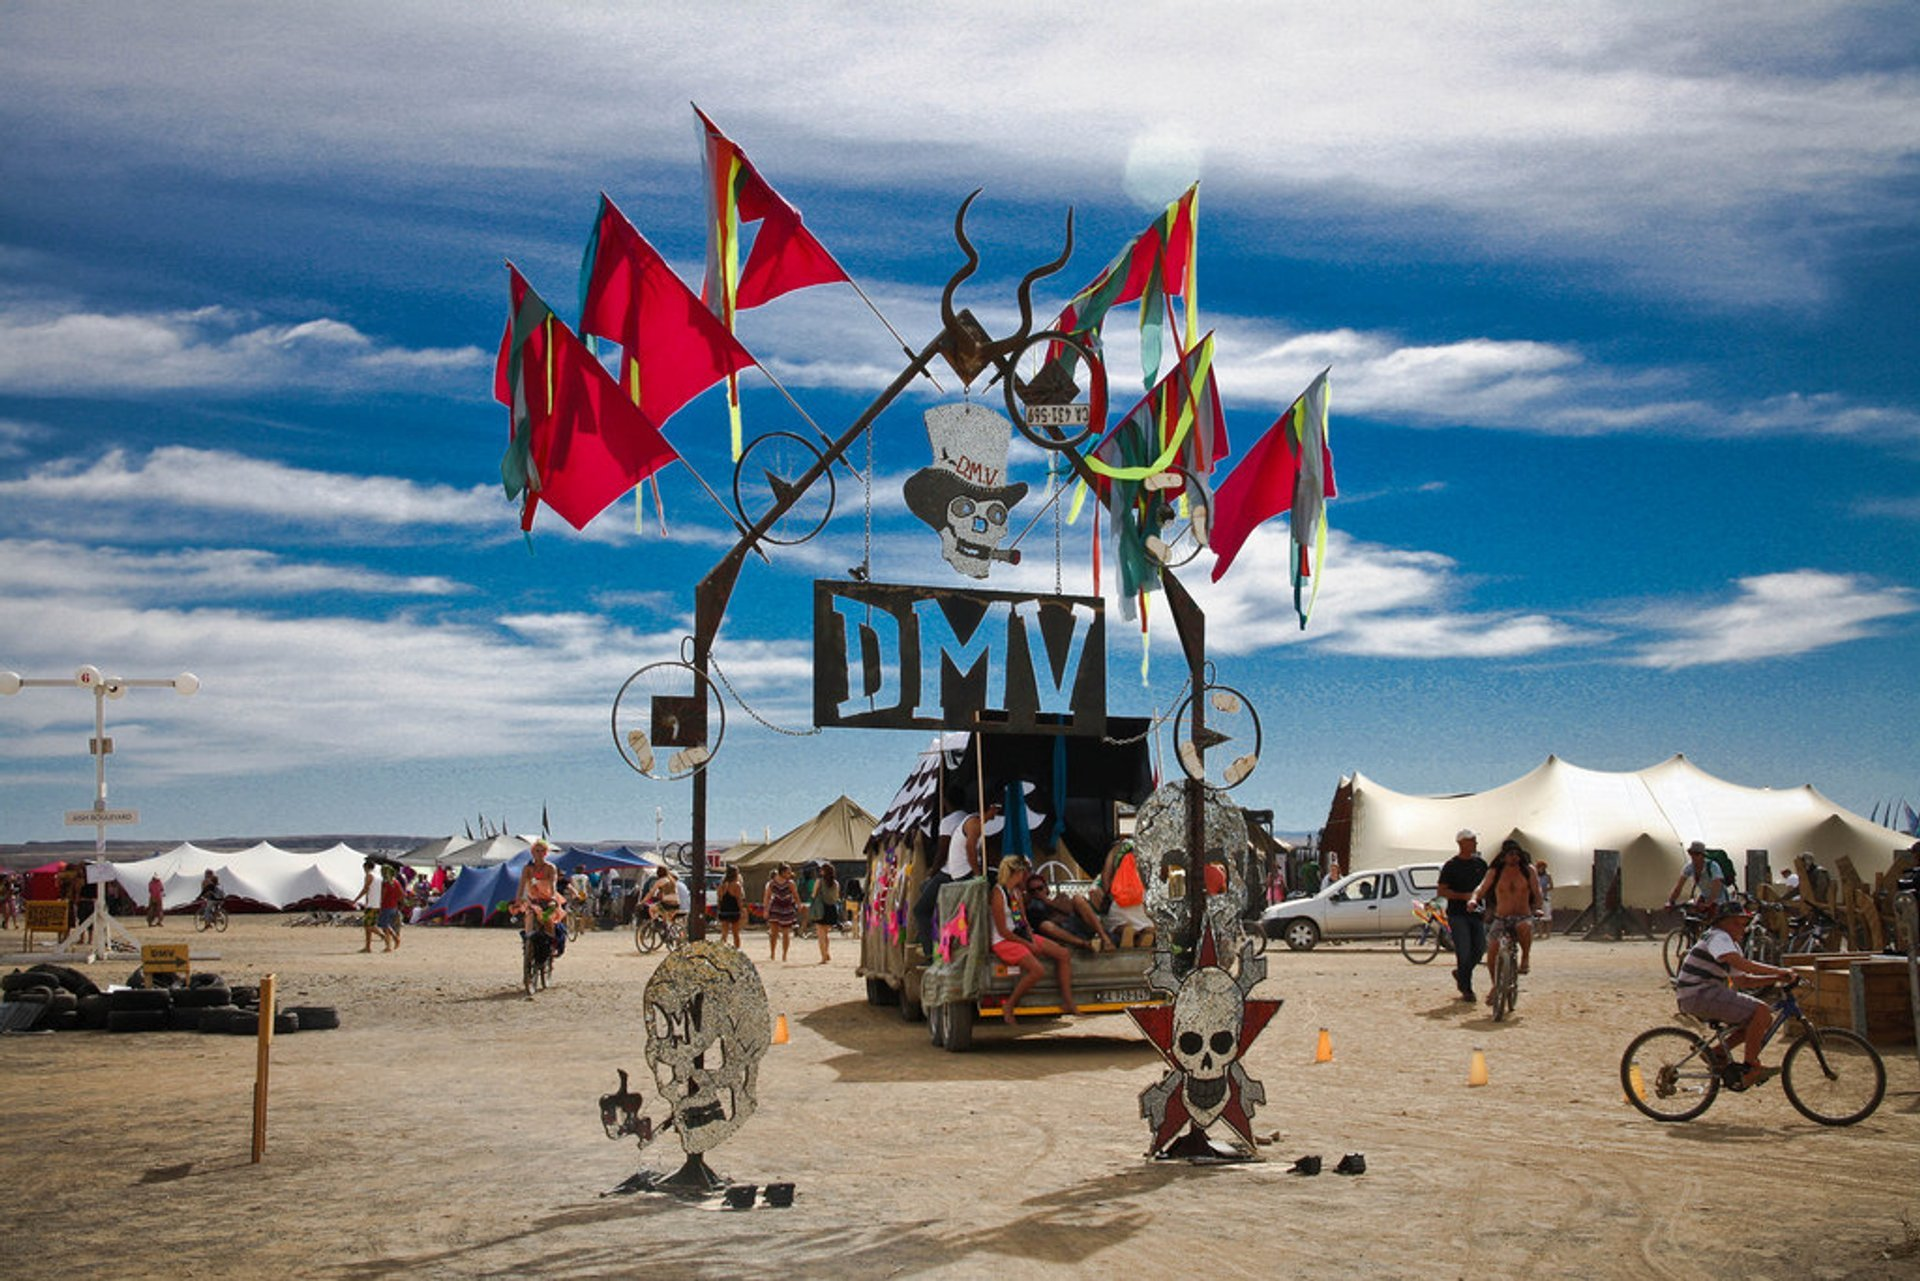 Best time to see AfrikaBurn in Cape Town